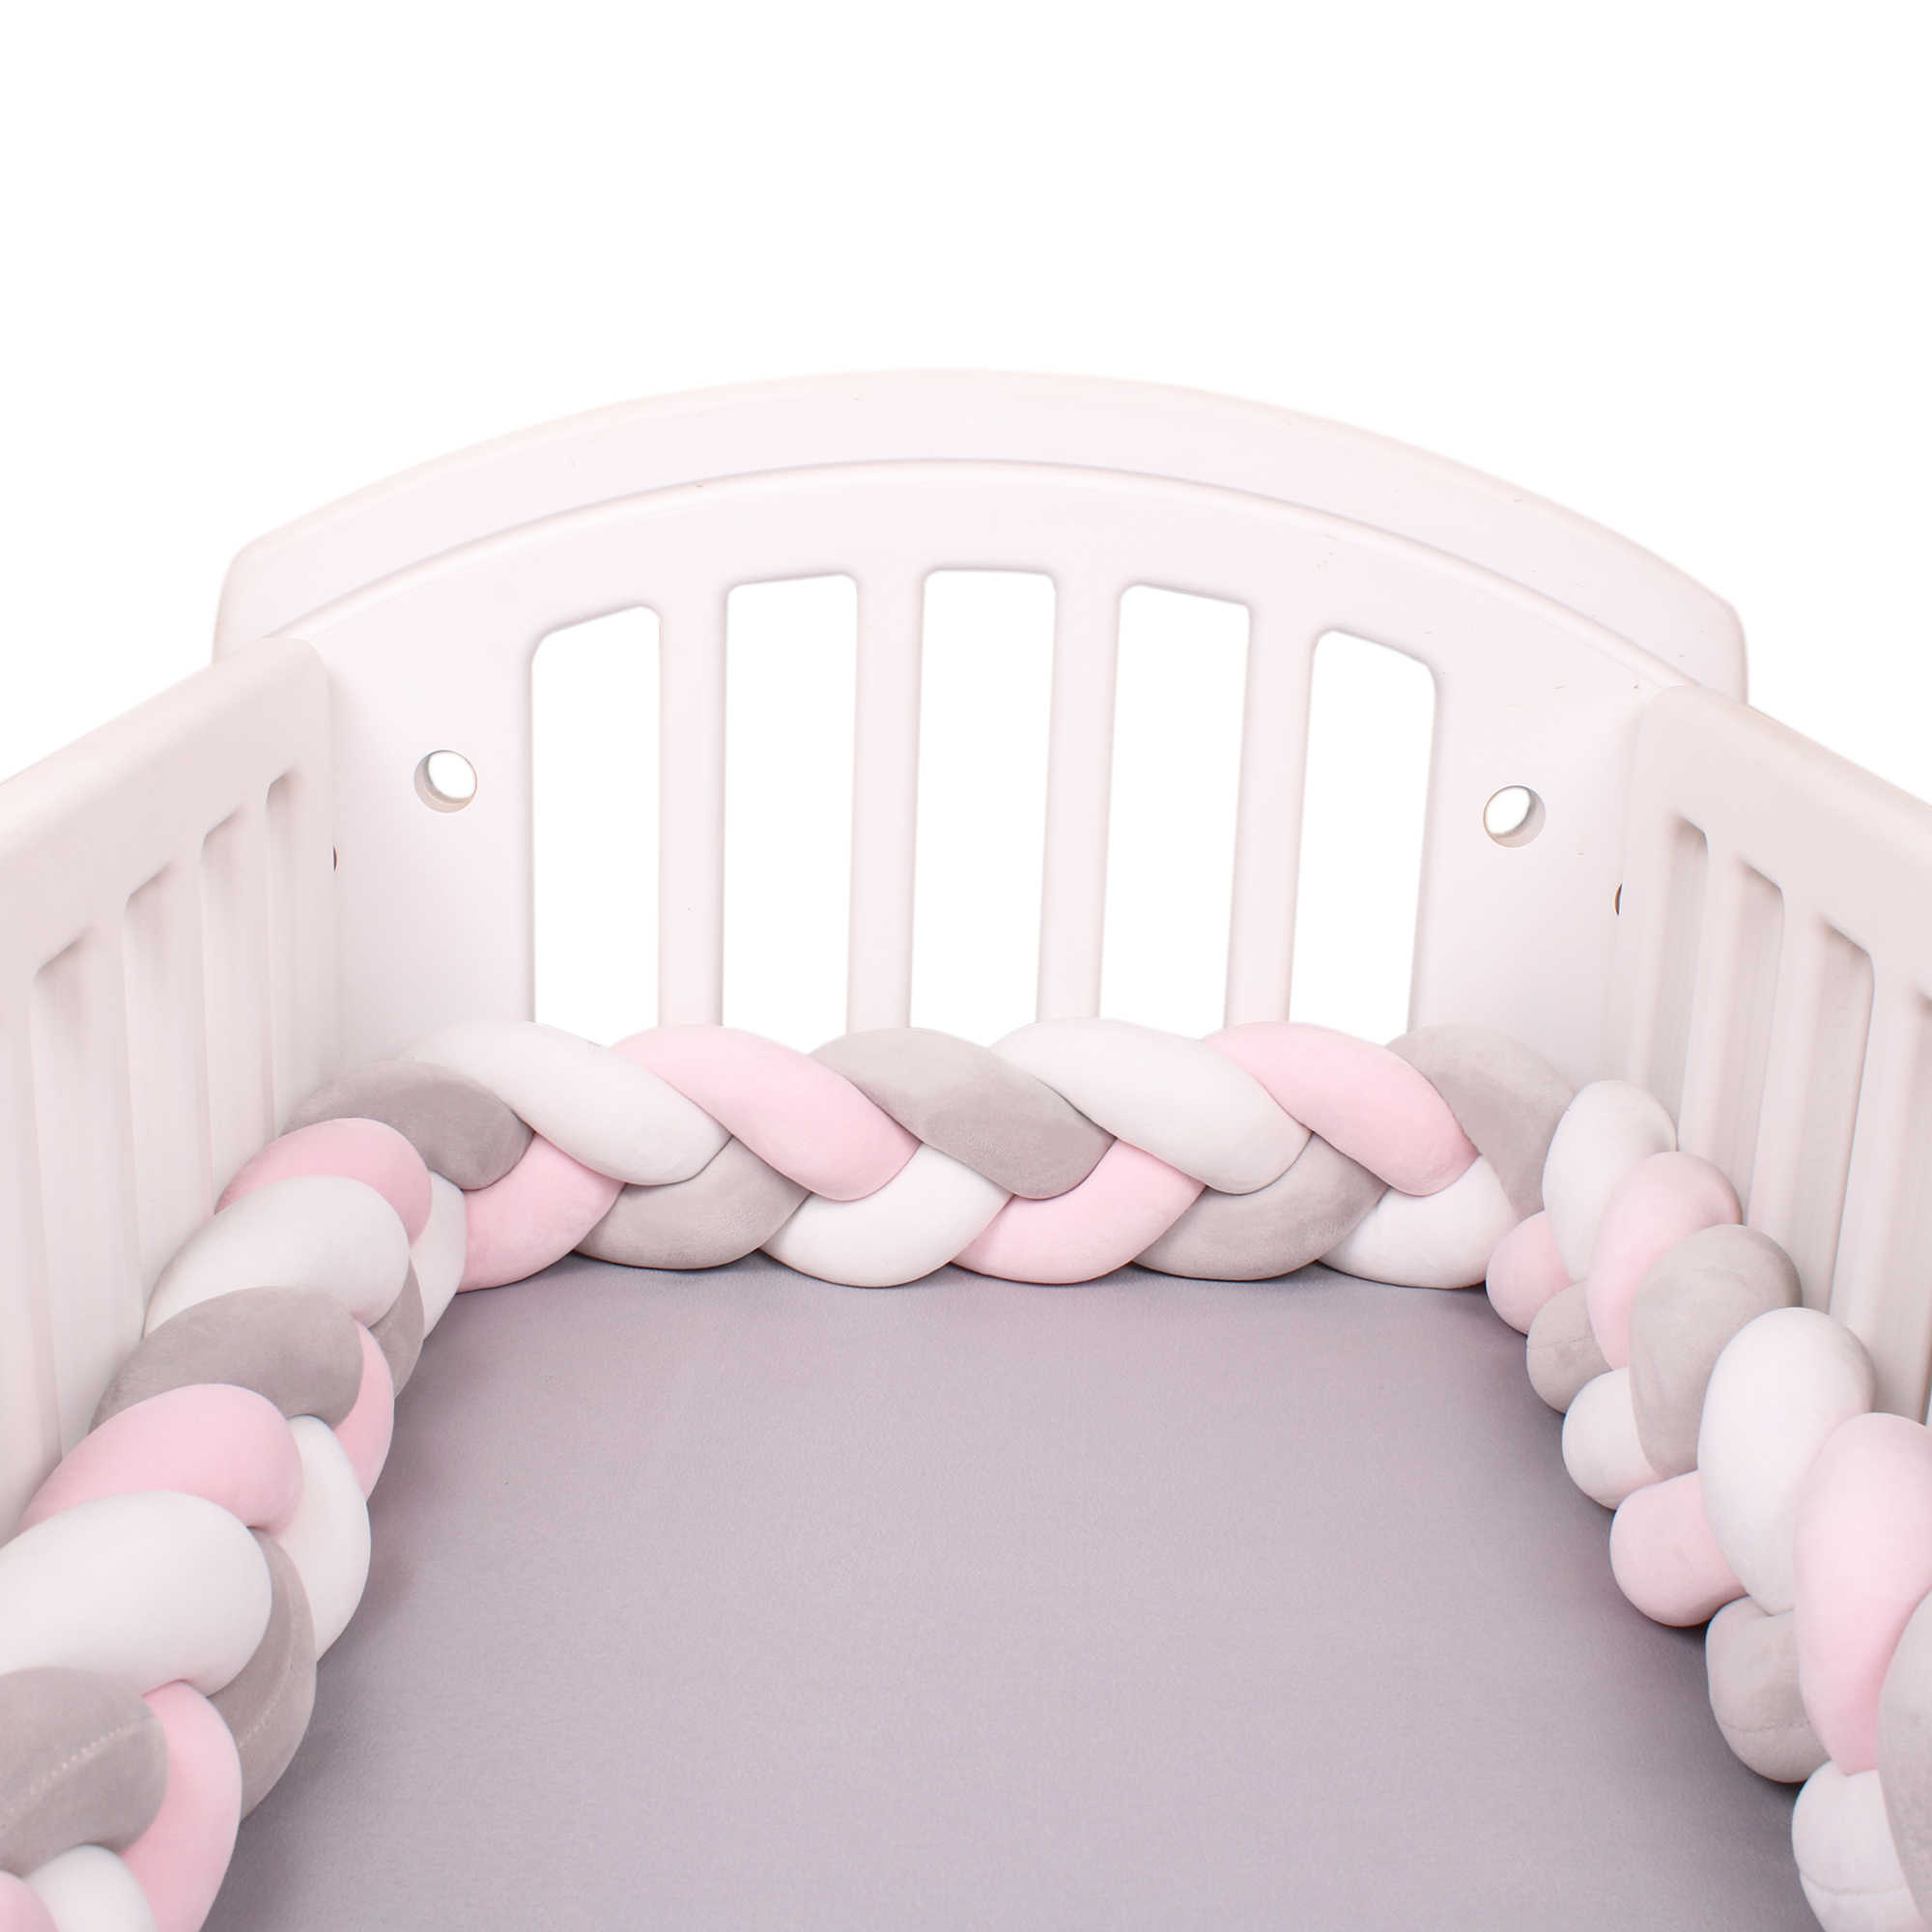 Baby Crib Bed Bumpe,Bedside Protector Baby Nursery Bedding Cradle Decor Soft Knotted for Toddler//Newborn Green, 2.2m